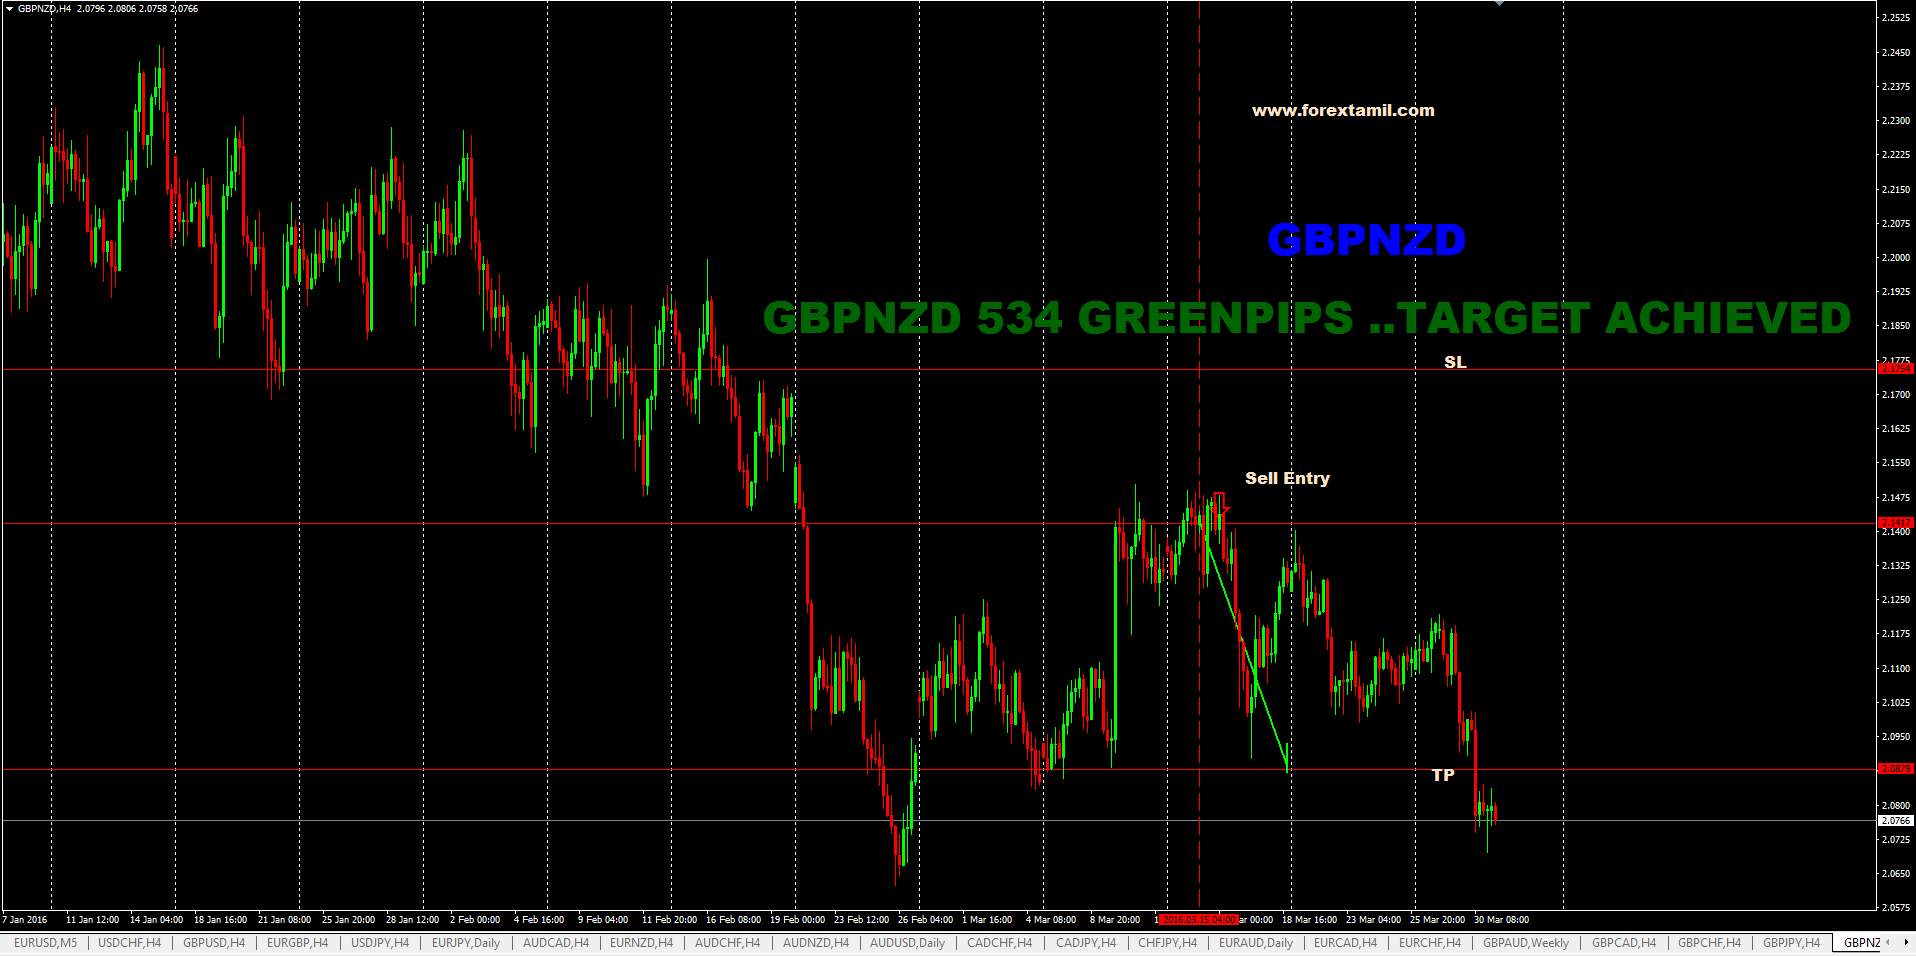 SURE SHOT SIGNAL RESULT : GBP/NZD 534 GREEN PIPS…TARGET ACHIEVED